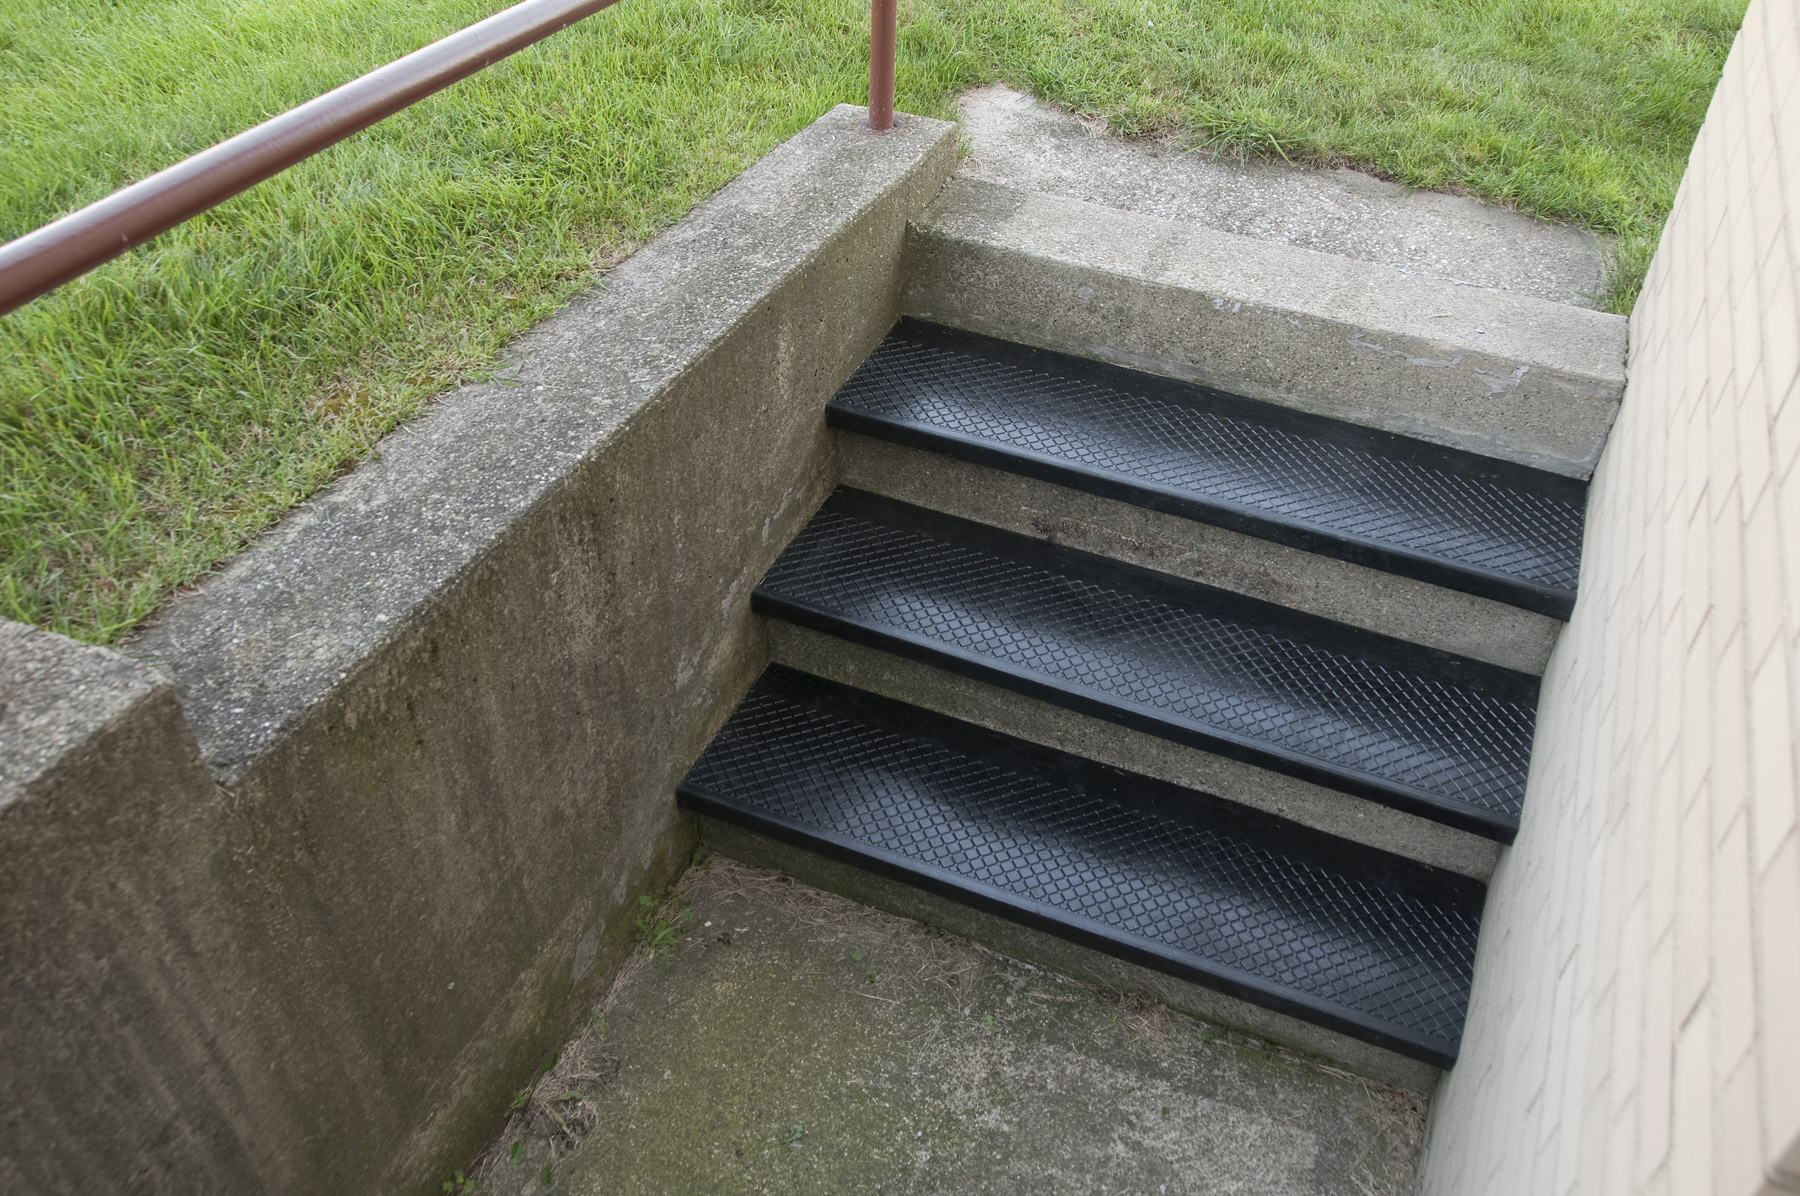 New Outdoor Recycled Rubber Stair Treads From Discount Floormat Store Provide A Durable And Environmentally Friendly Covering For Exterior Stairways